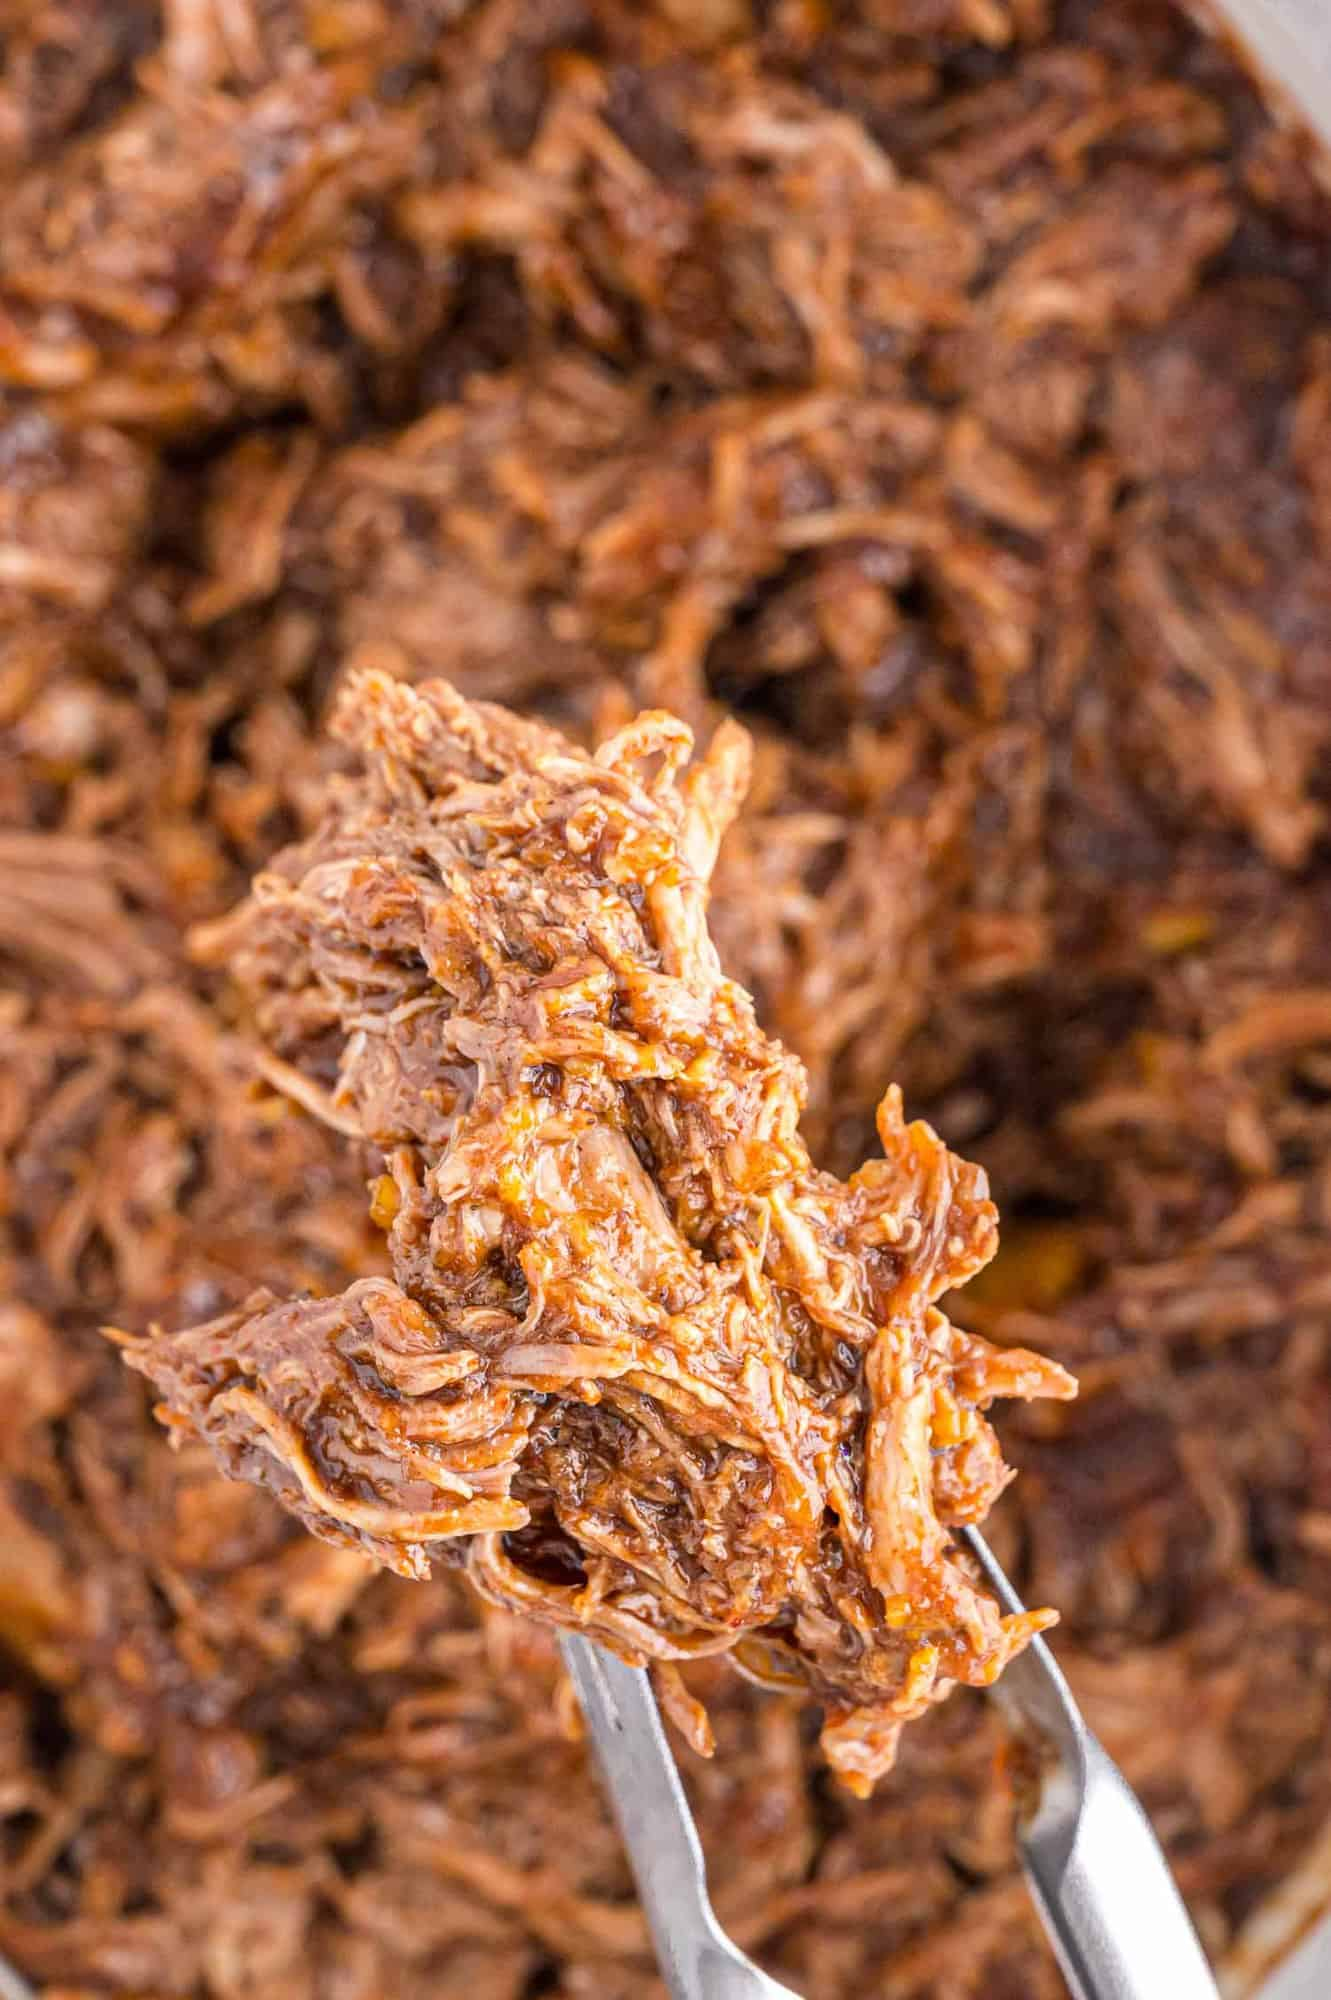 Pulled pork on tongs.